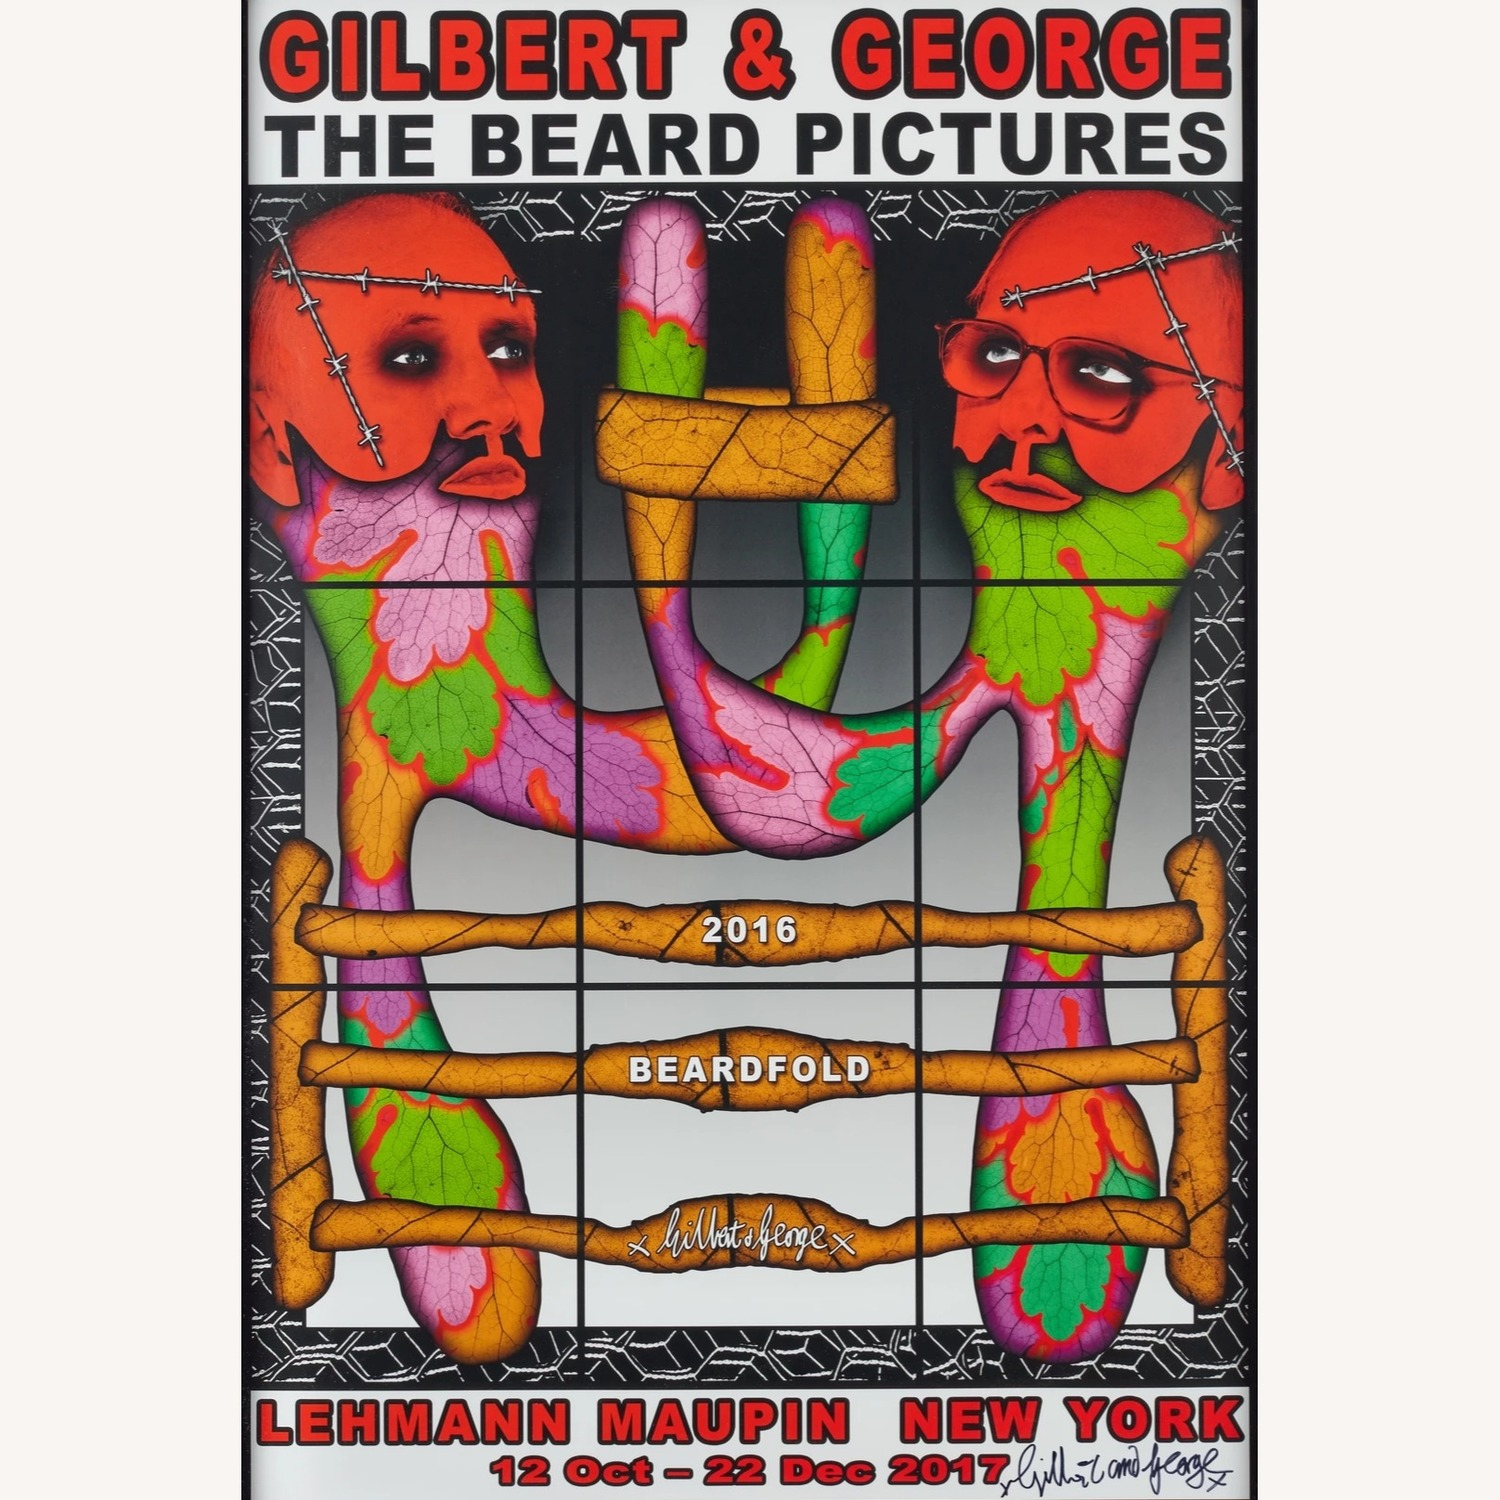 Gilbert & George Signed Exhibition Lithograph